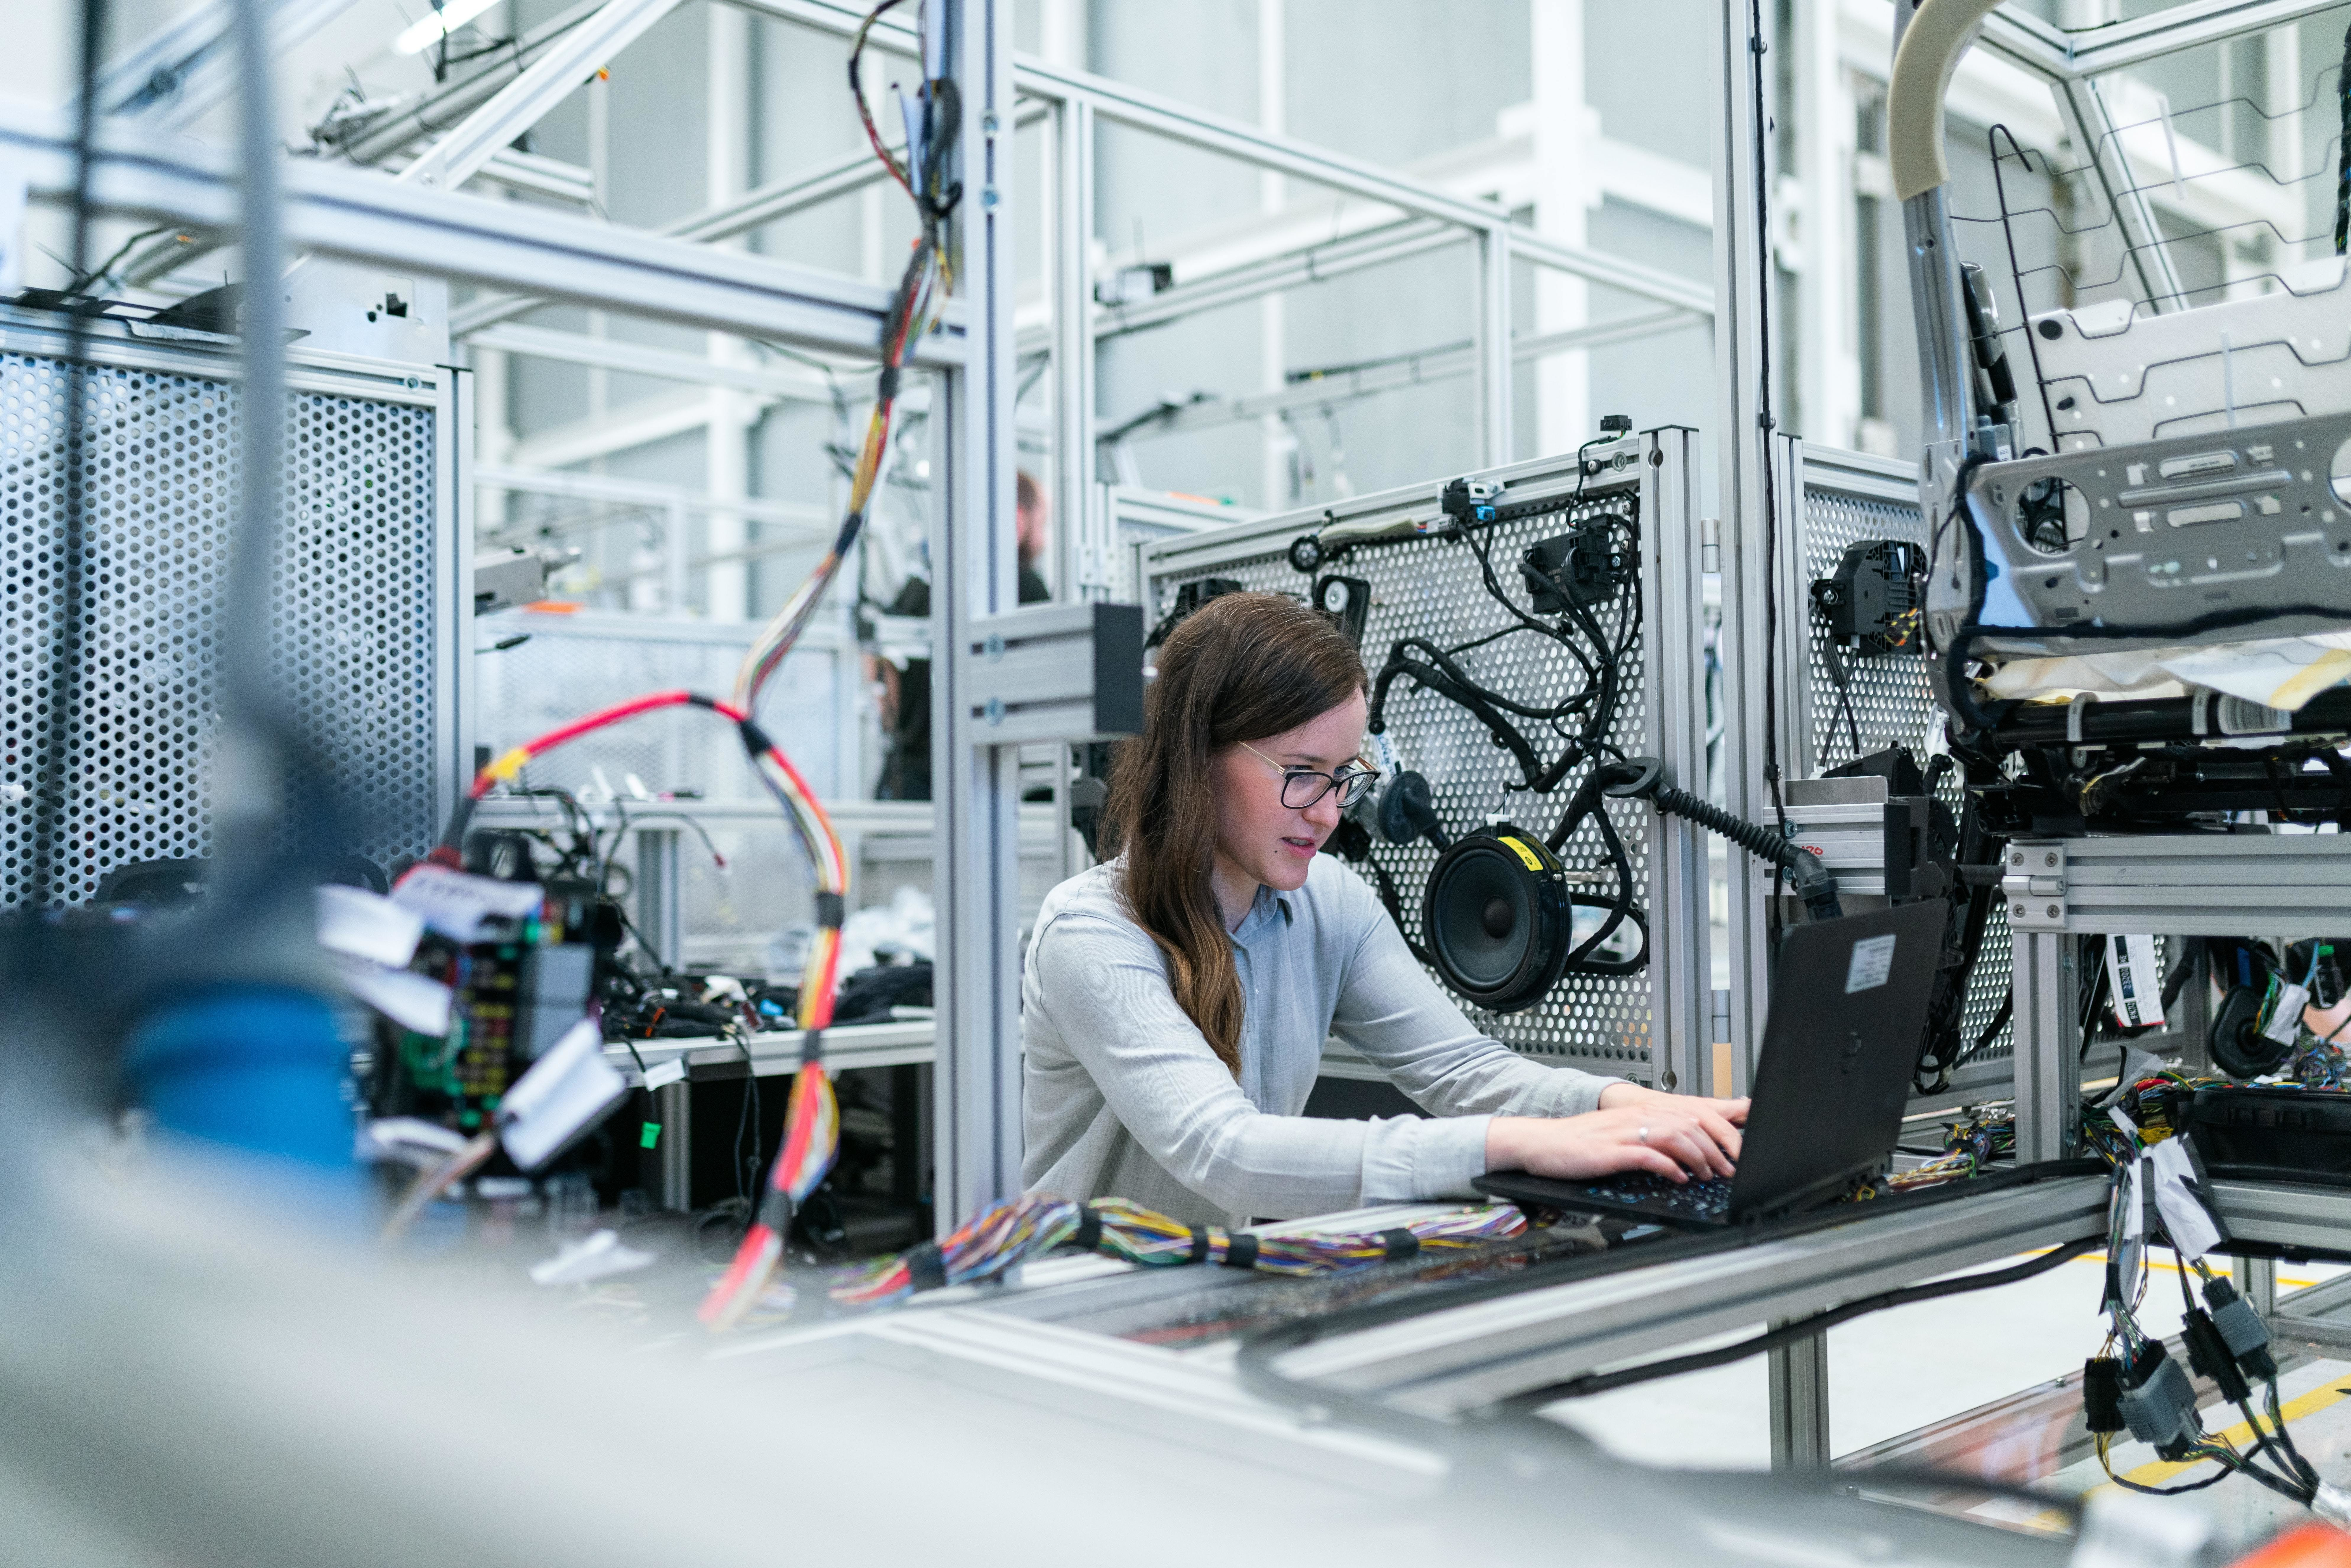 A woman engineer is pictured, as the CEO of the Royal Academy of Engineering calls for more women in engineering.